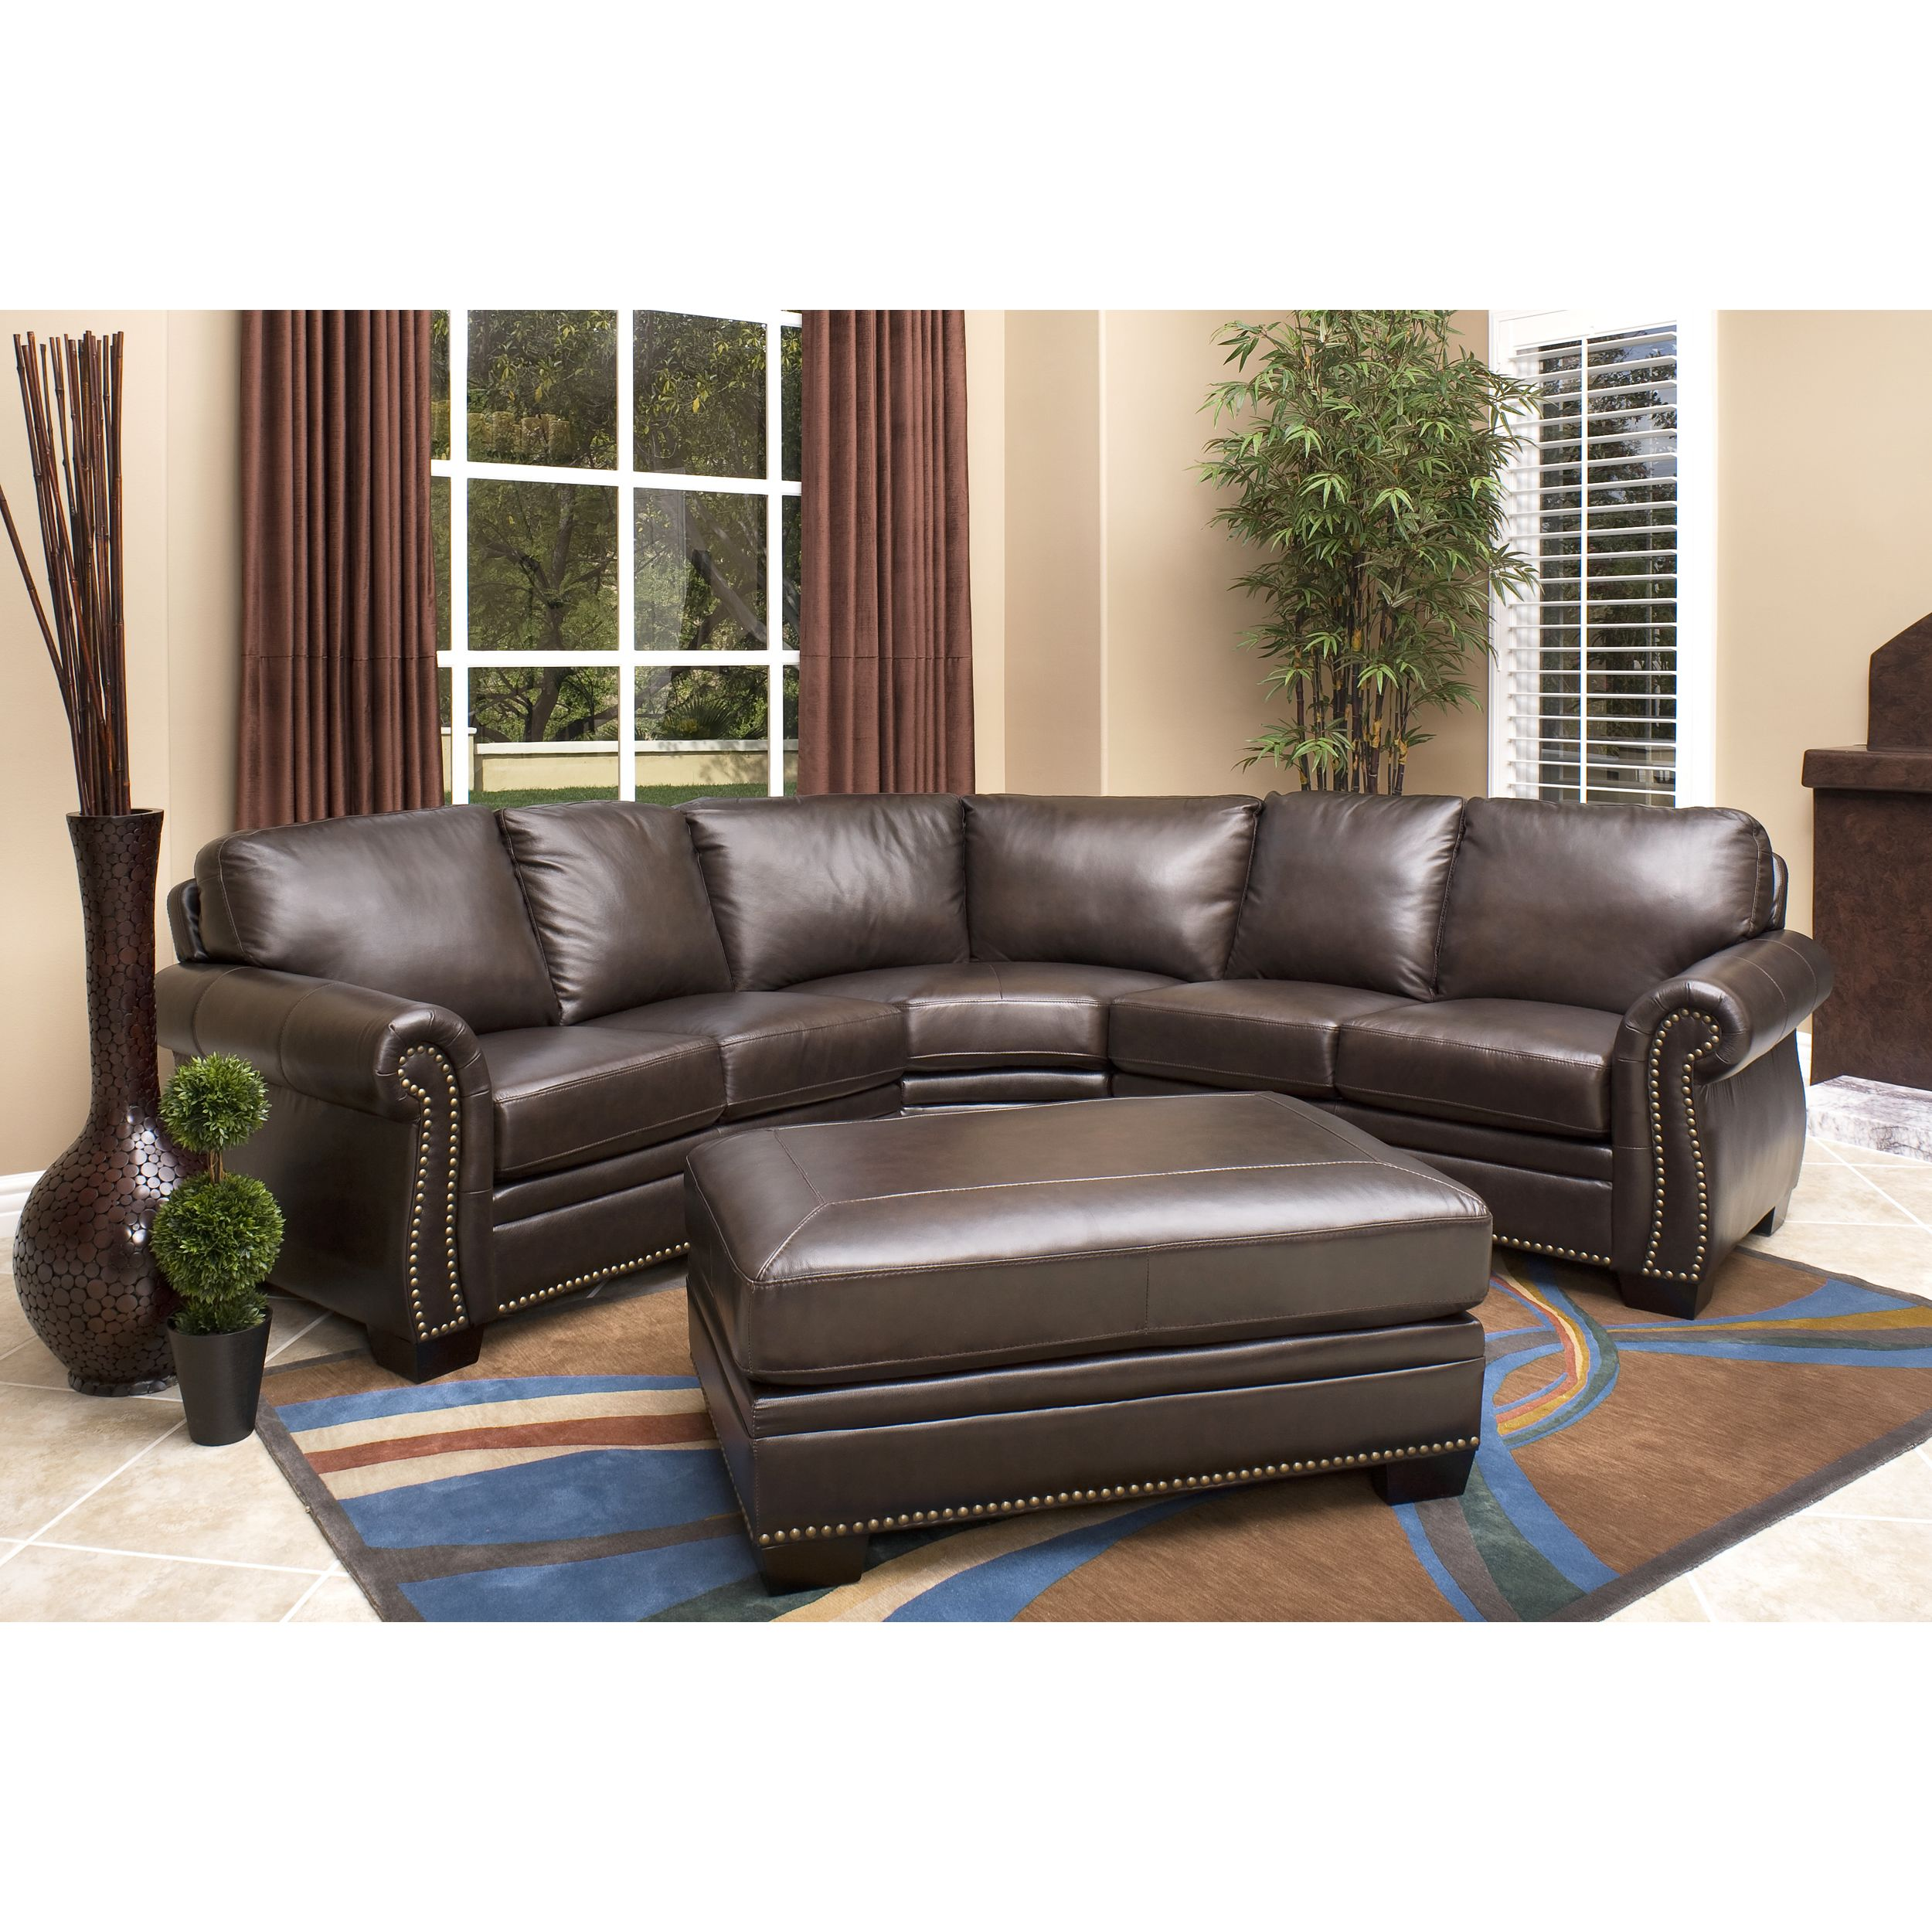 Abbyson Oxford Top grain Leather Sectional and Ottoman by Abbyson